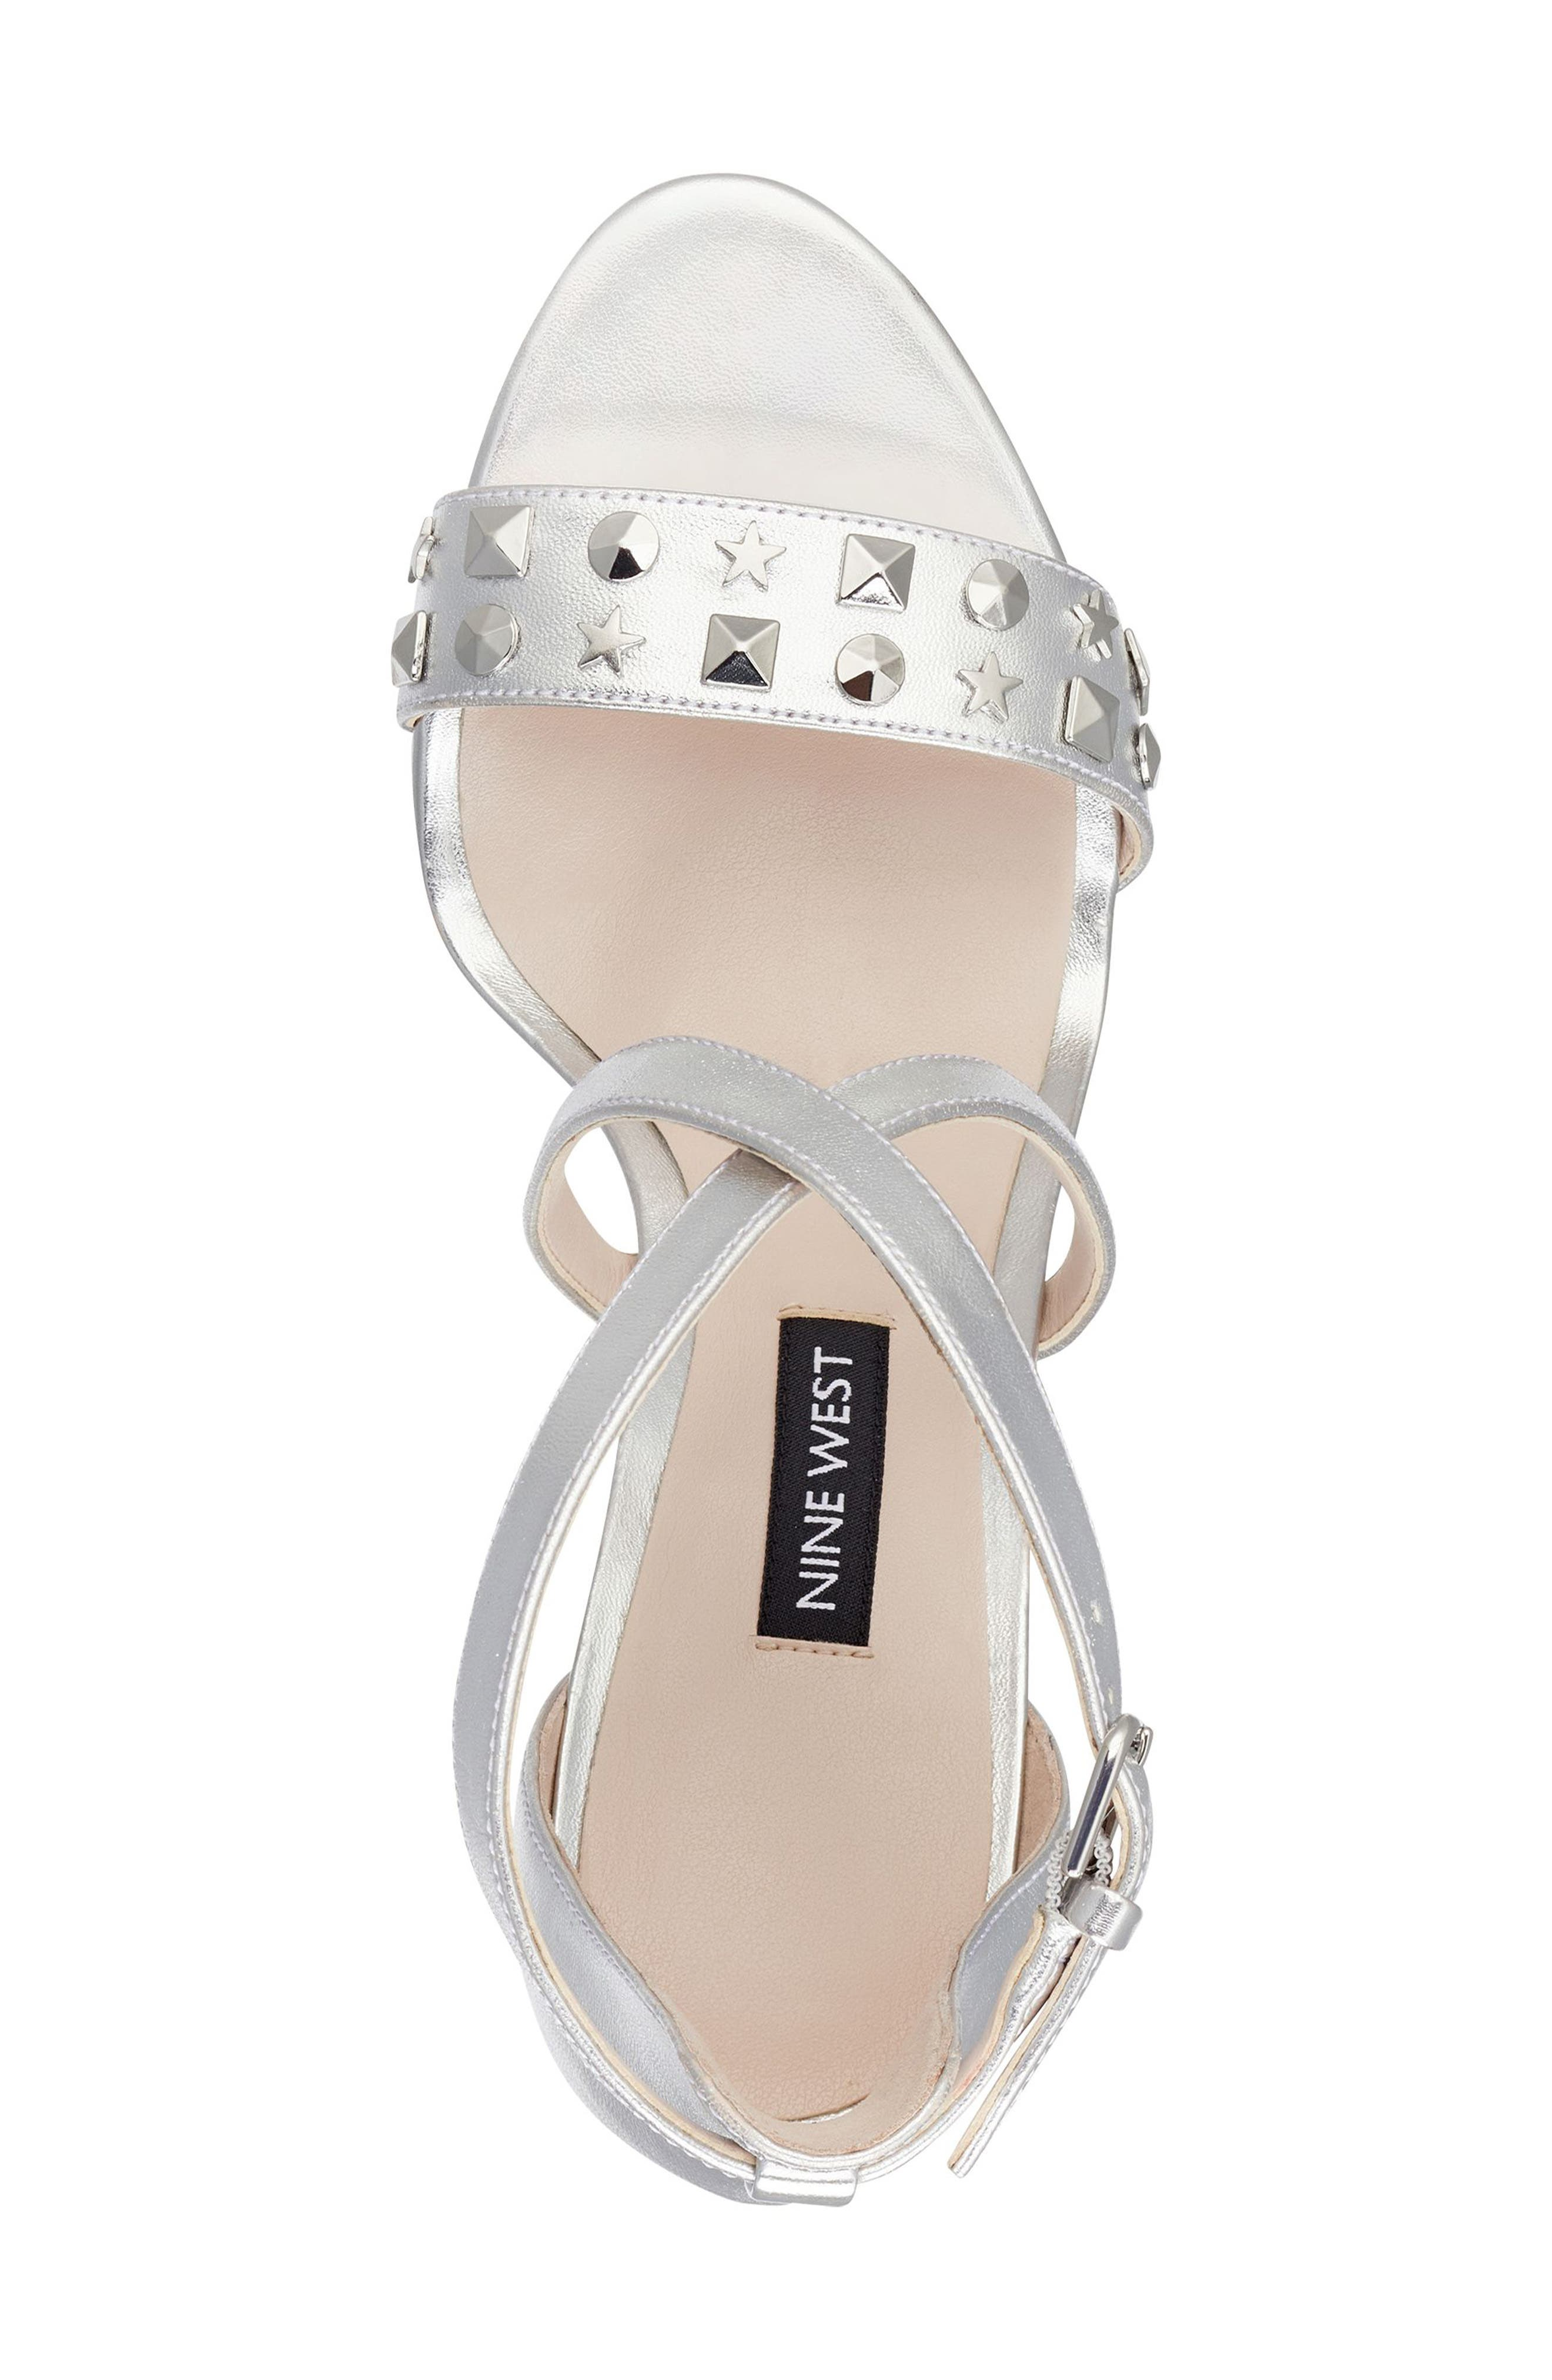 Maziany Studded Sandal,                             Alternate thumbnail 6, color,                             Silver Faux Leather